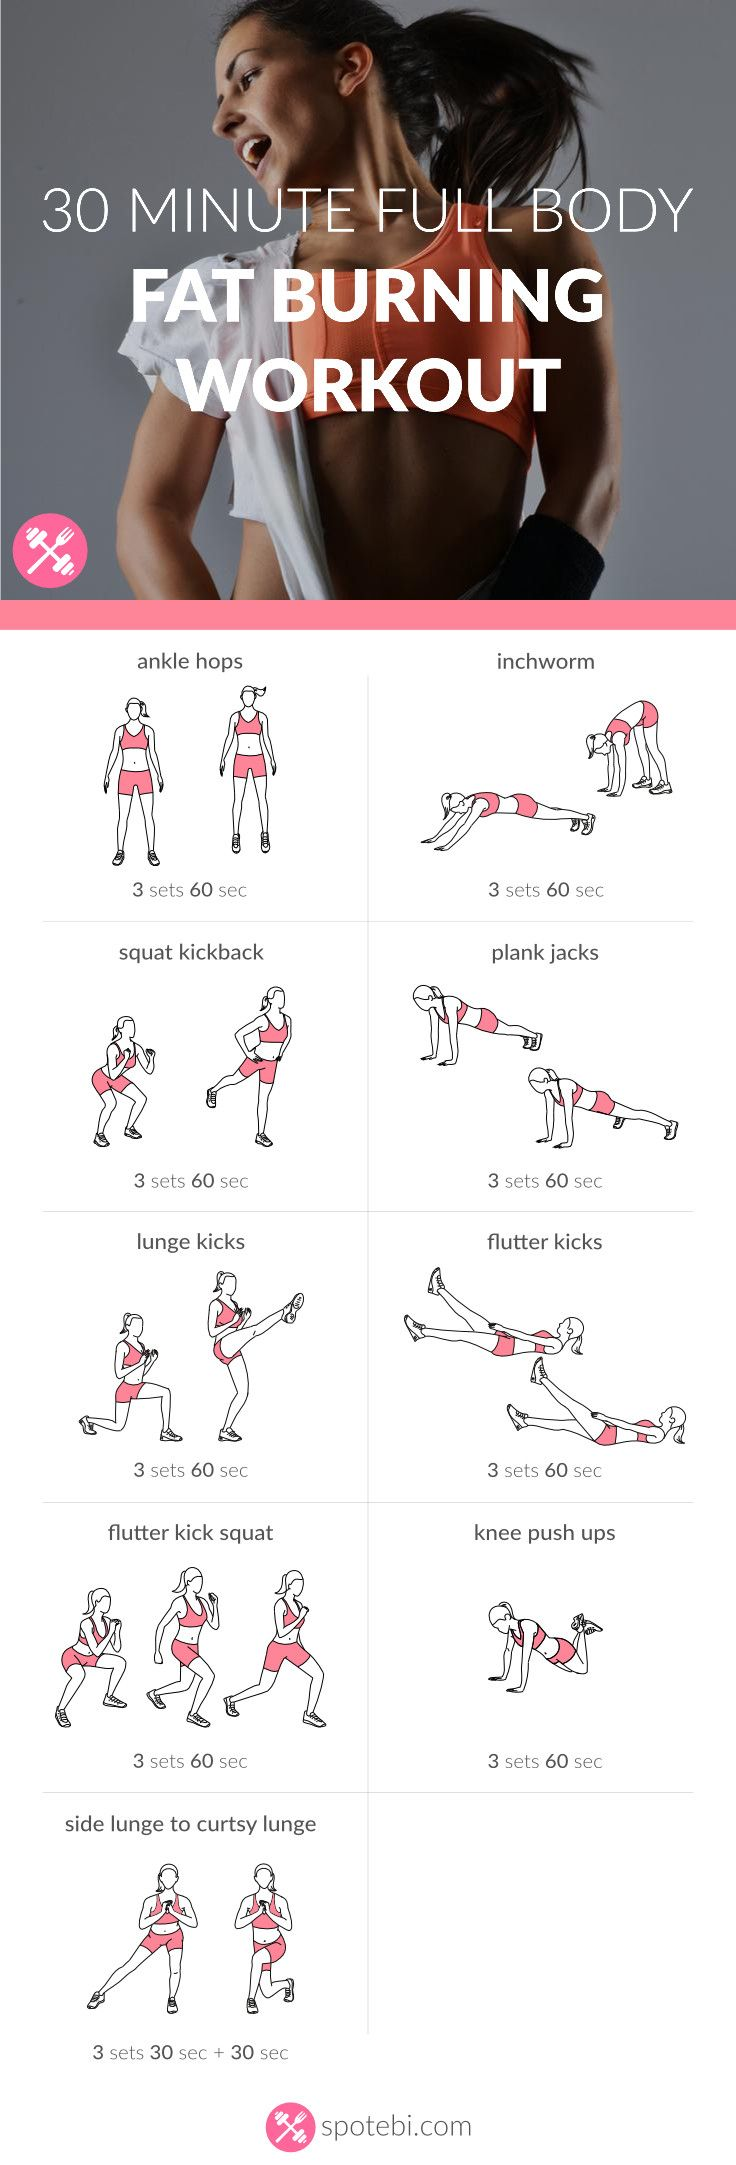 Burn extra calories with this 30 minute full body fat burning workout routine. A set of aerobic exercises to strengthen your heart and tighten your body. http://www.spotebi.com/workout-routines/30-minute-full-body-fat-burning-workout/